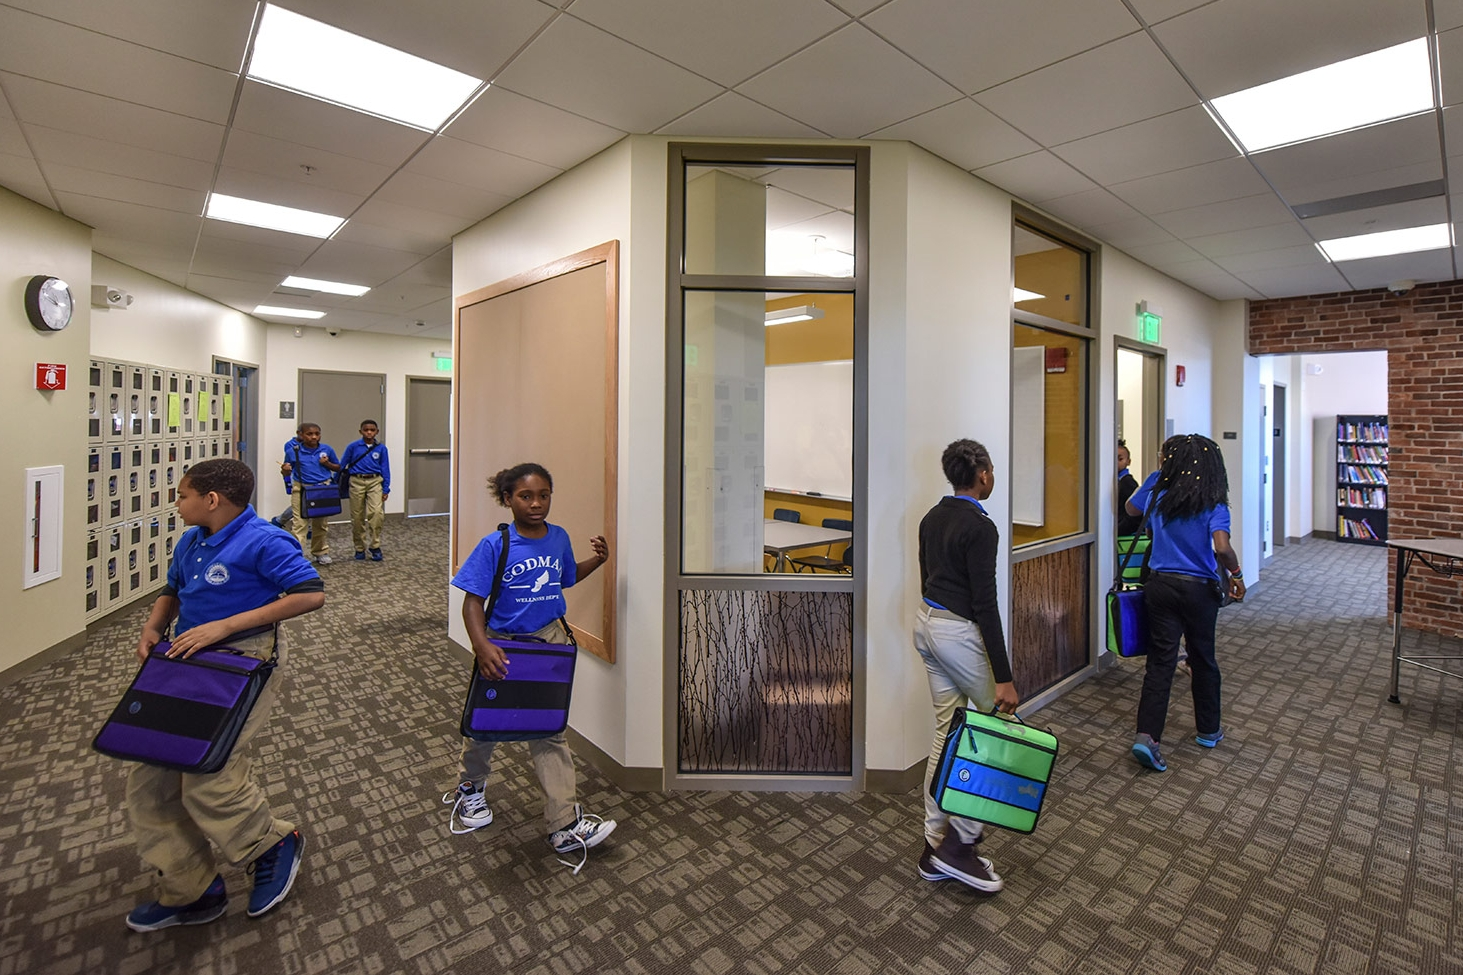 Elements of nature are woven throughout the school